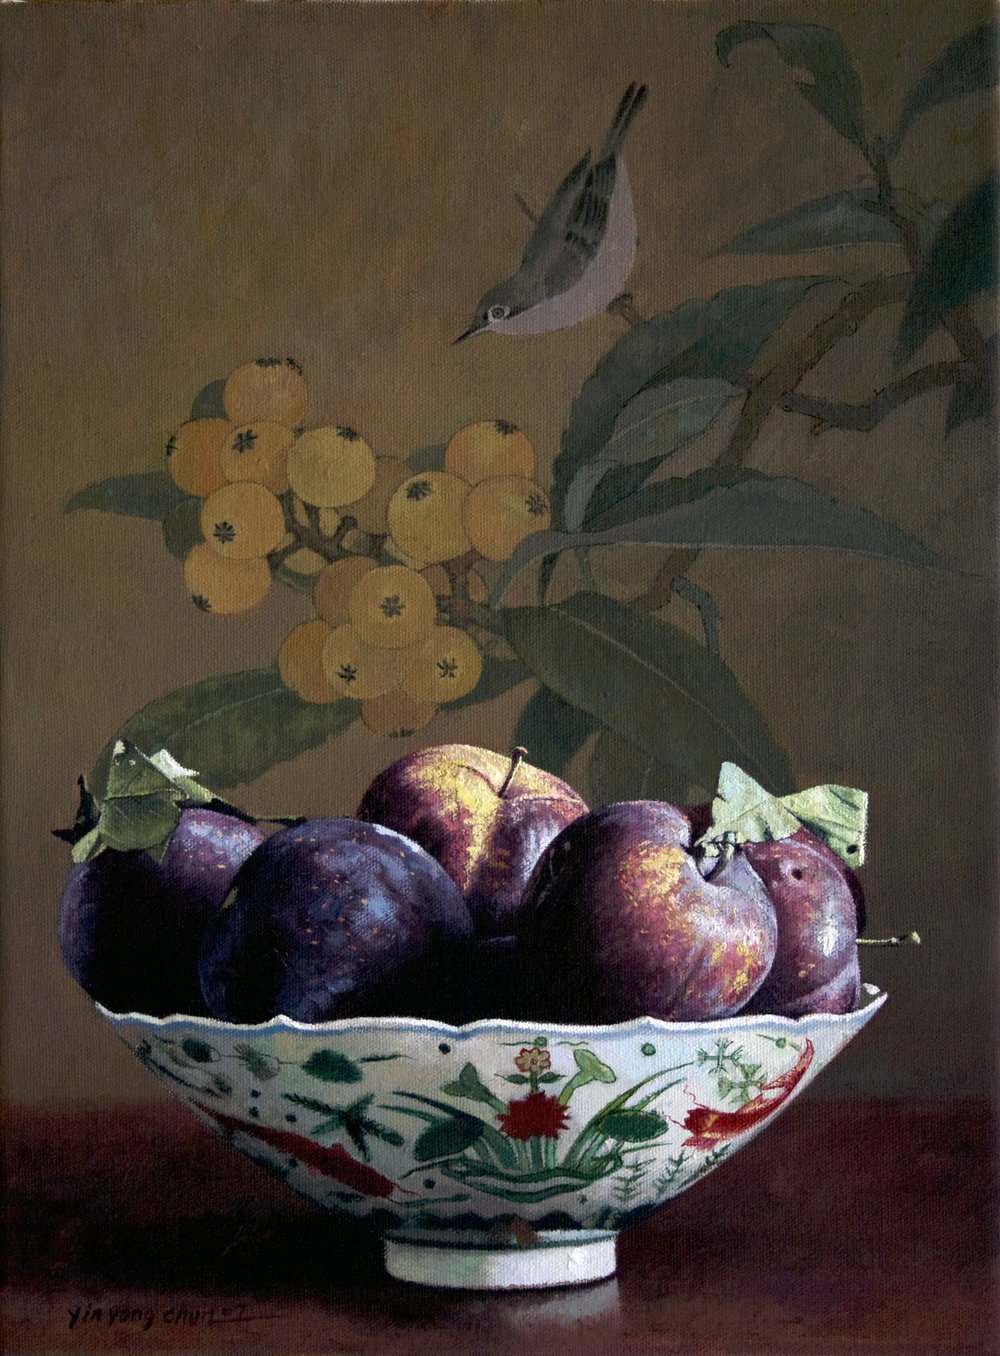 One bowl of black plums